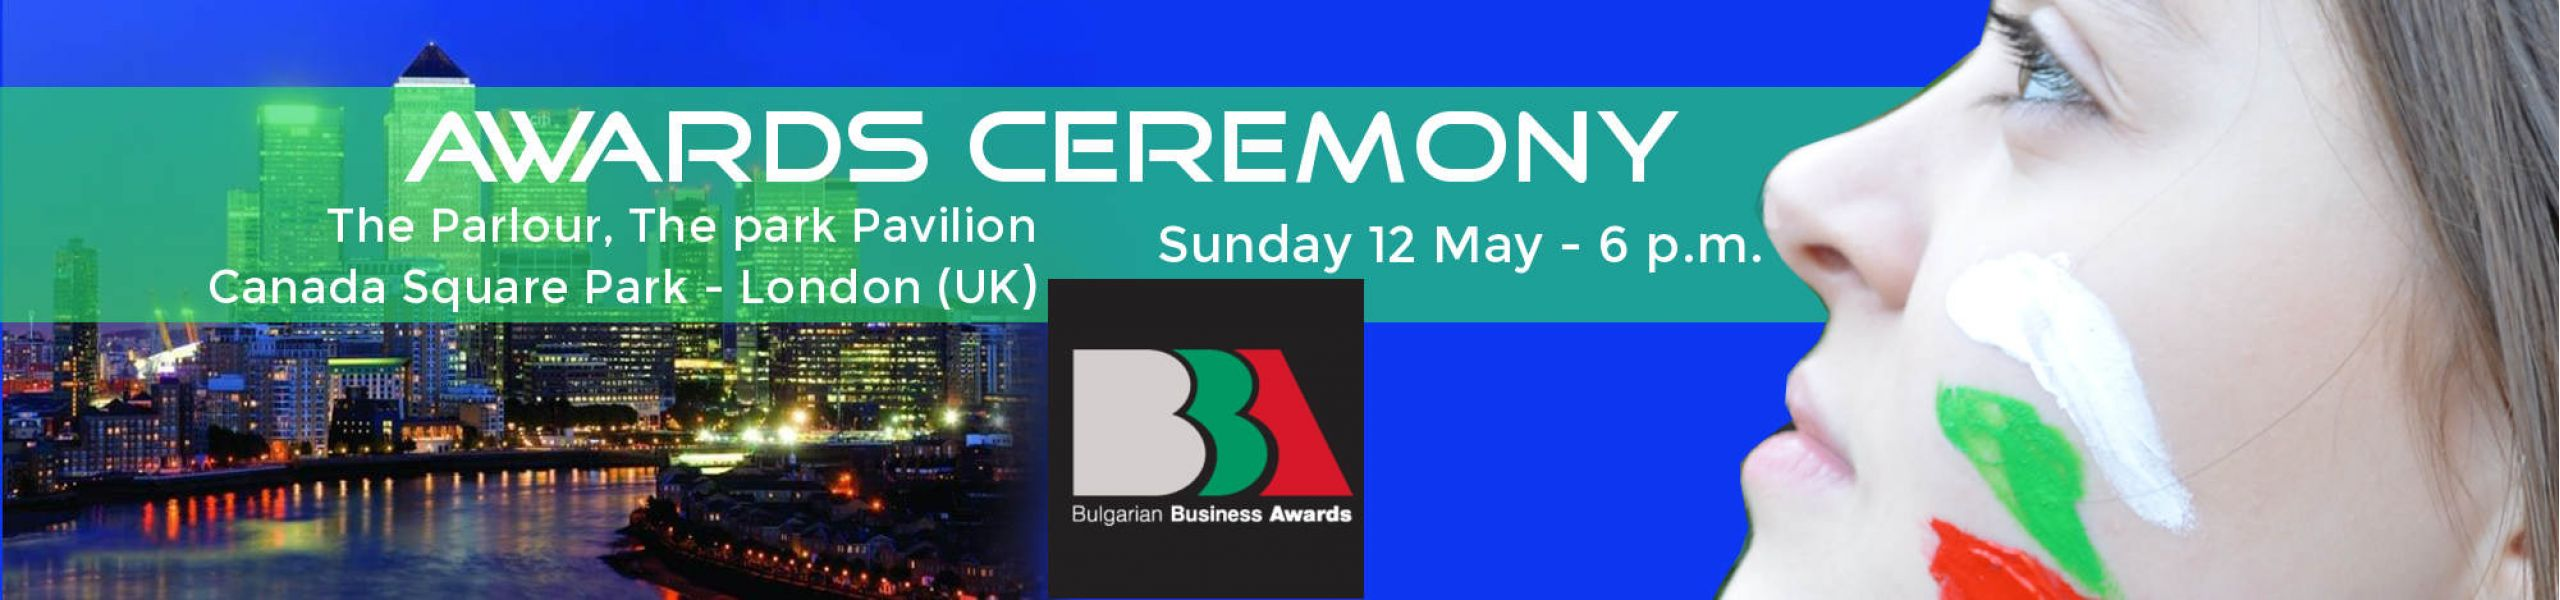 Bulgarian Business Ceremony Awards 2019 - London - Elisa Neri